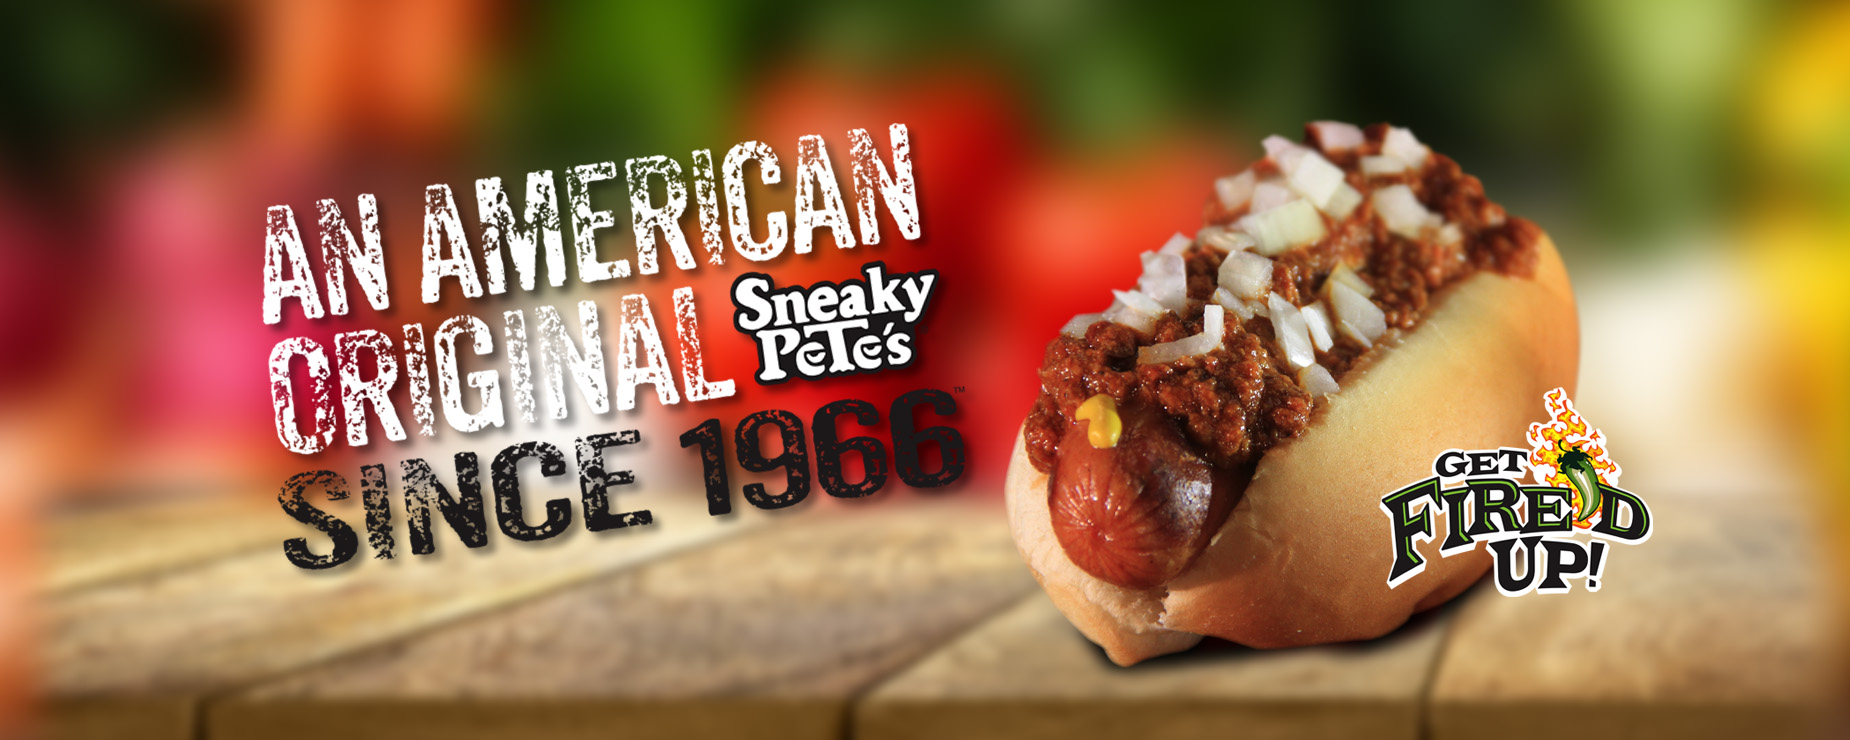 Sneaky Pete's Hotdogs